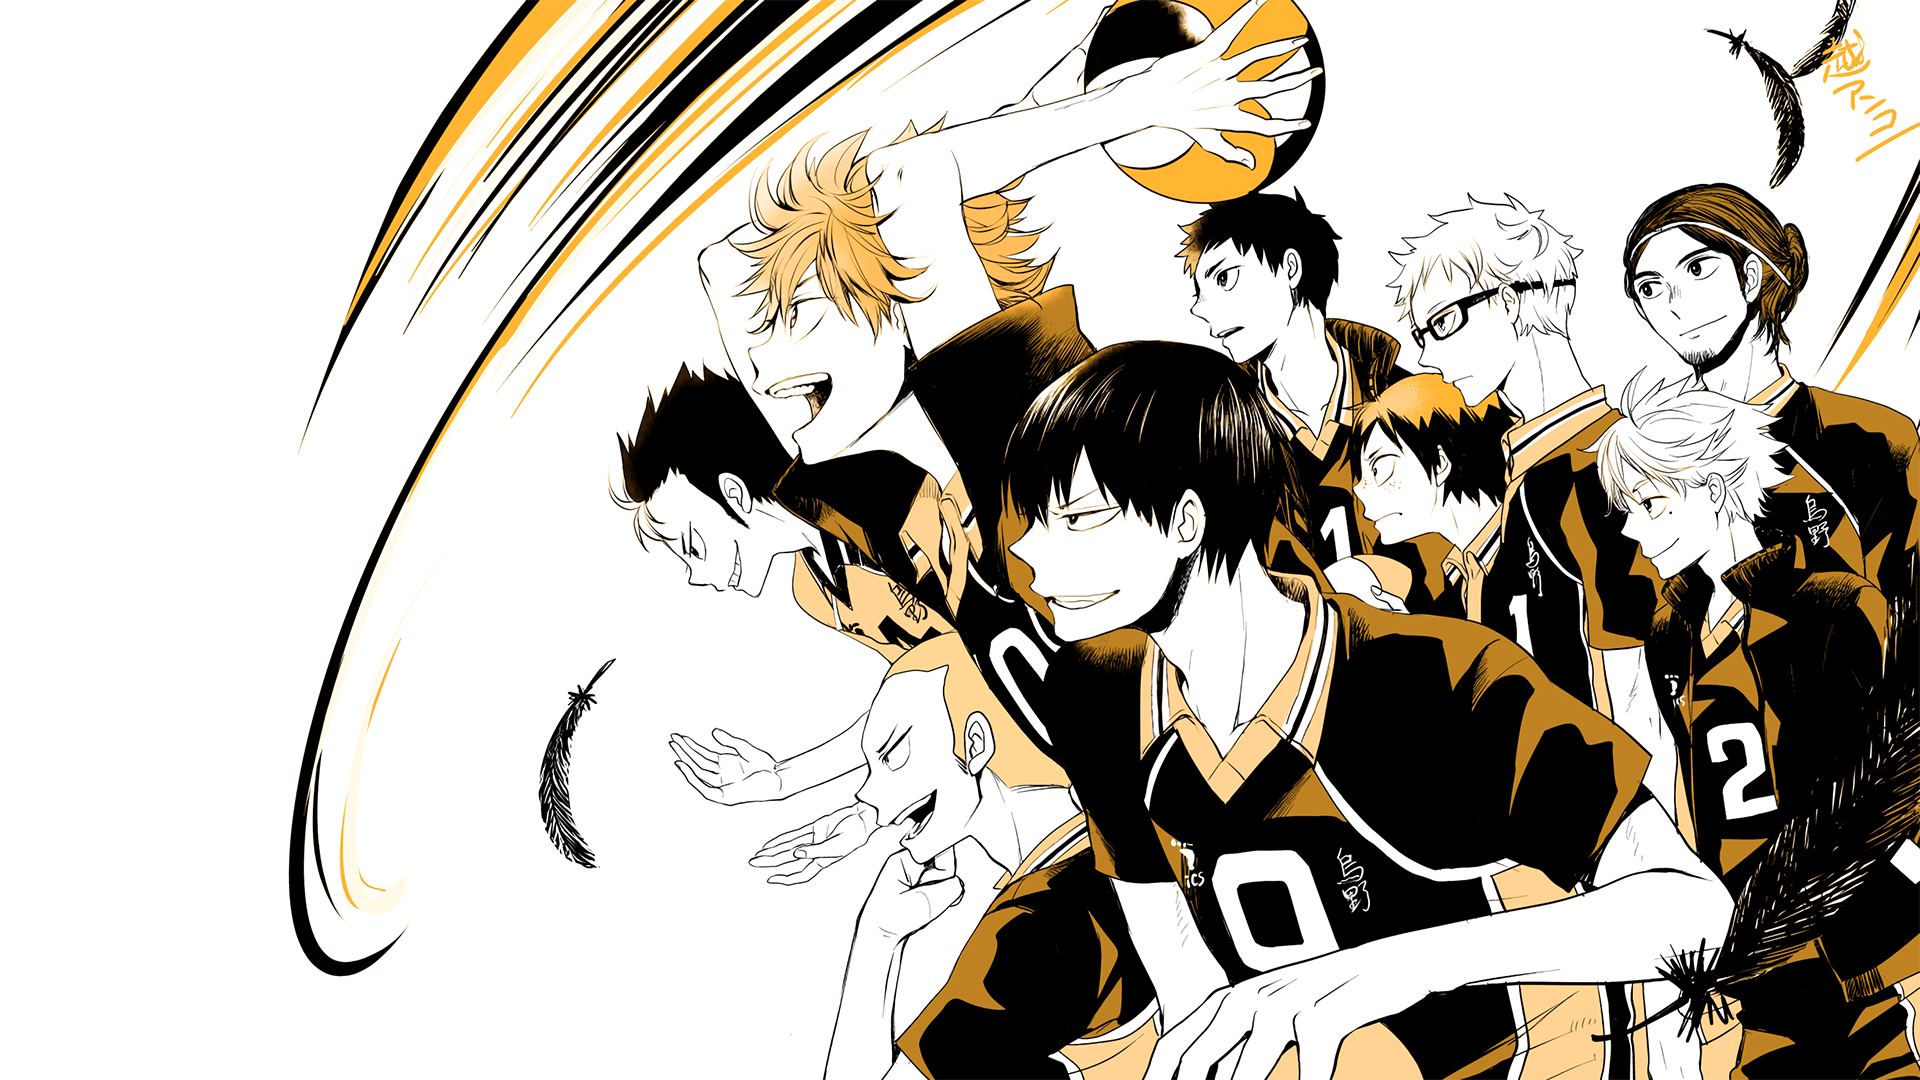 Best Anime Haikyuu Wallpaper Hd Wallpaper Gambar Anime Gambar